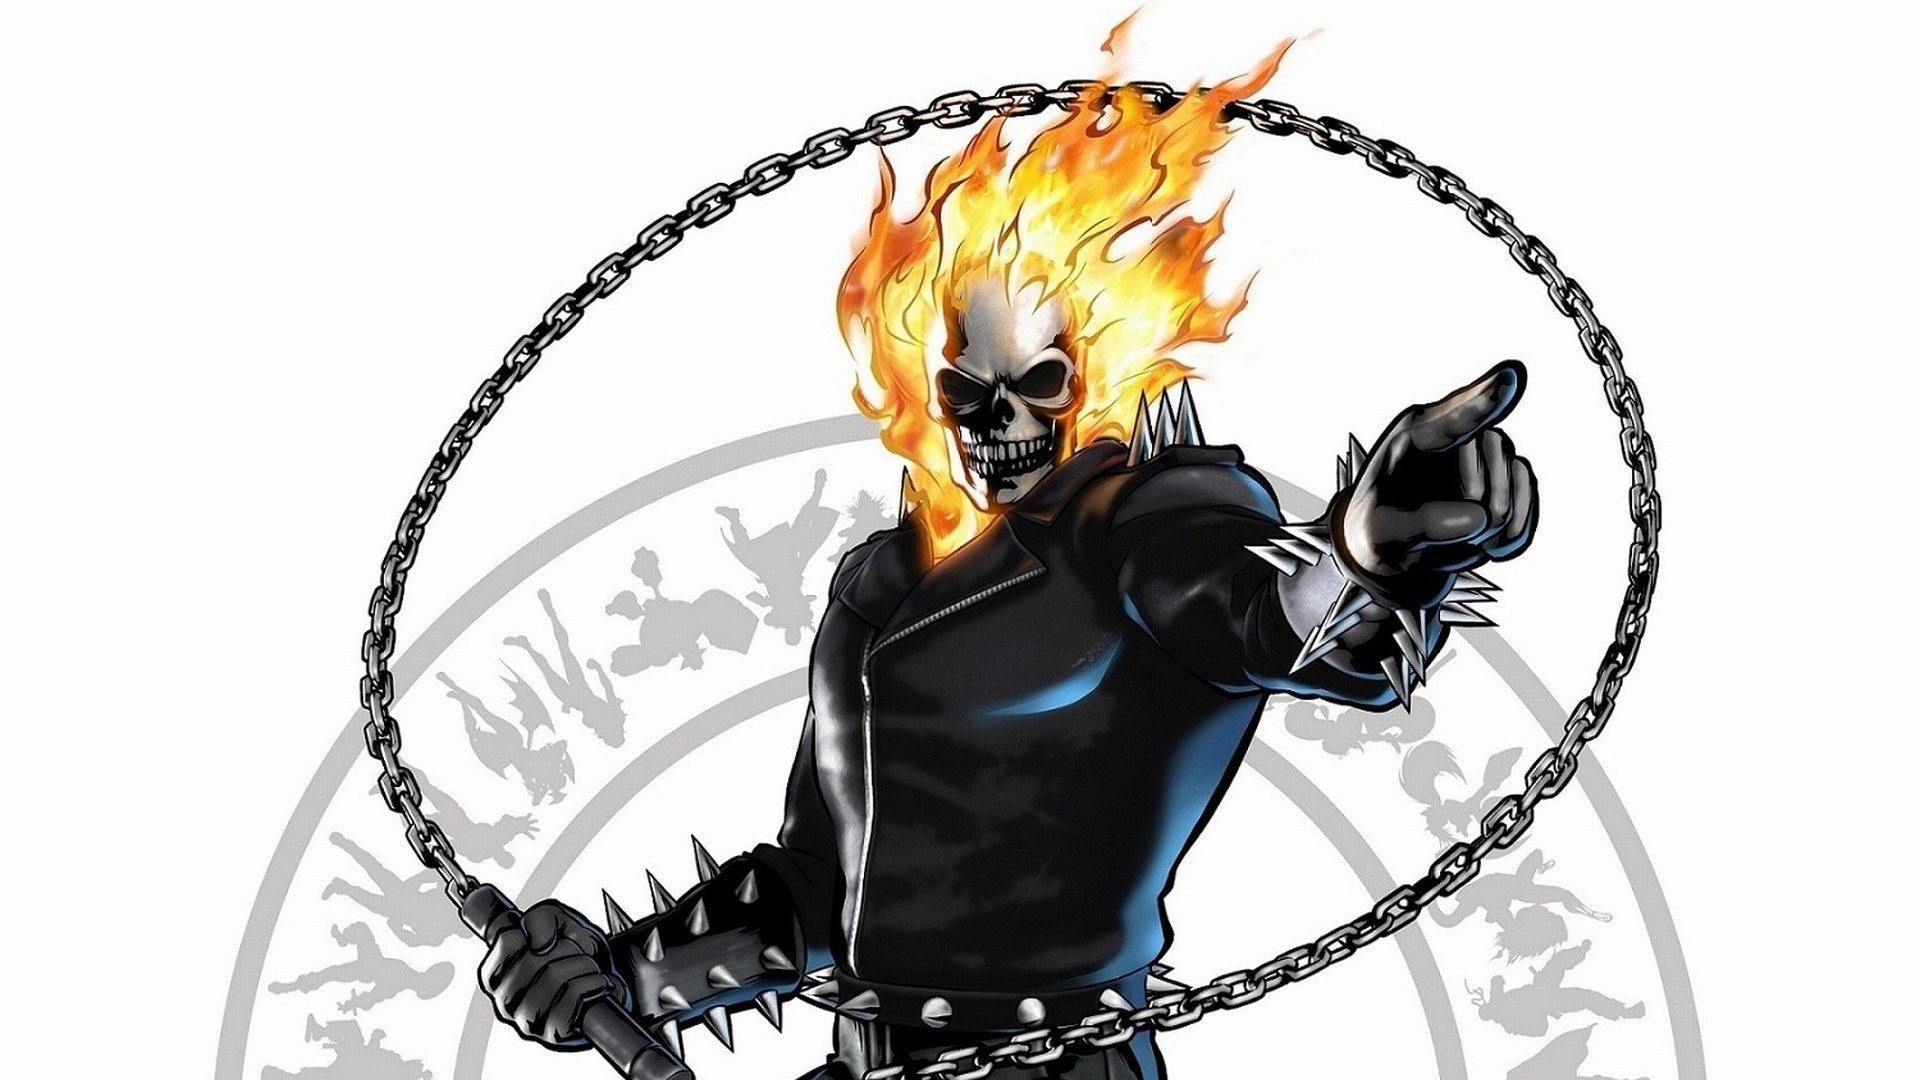 ghost rider wallpaper ·① download free awesome hd backgrounds for